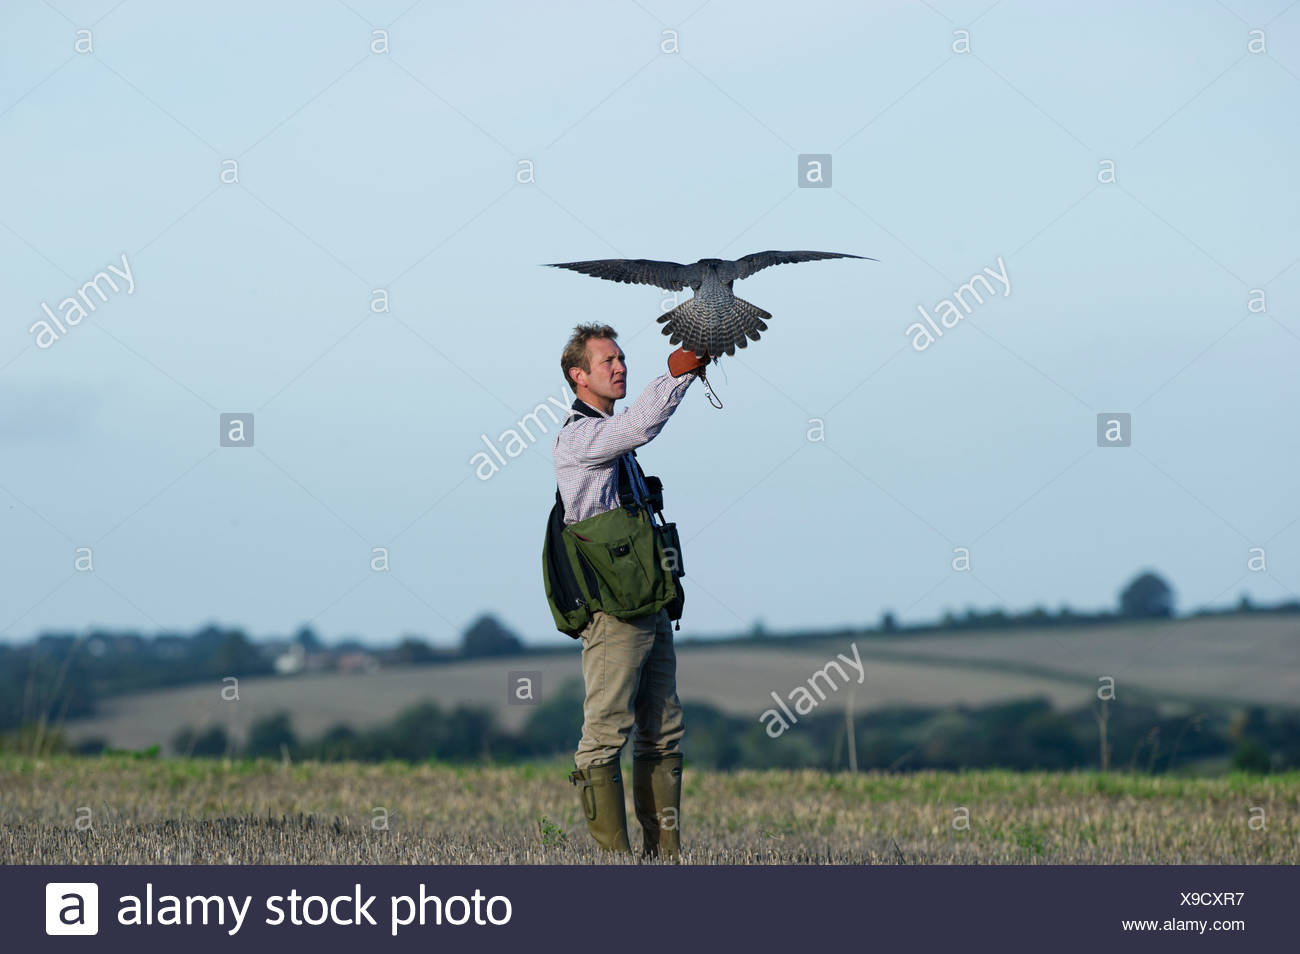 Falconer andy Hollidge with Peregrine Falcon at British Falconers Club International meet Lincolnshire 2010 - Stock Image